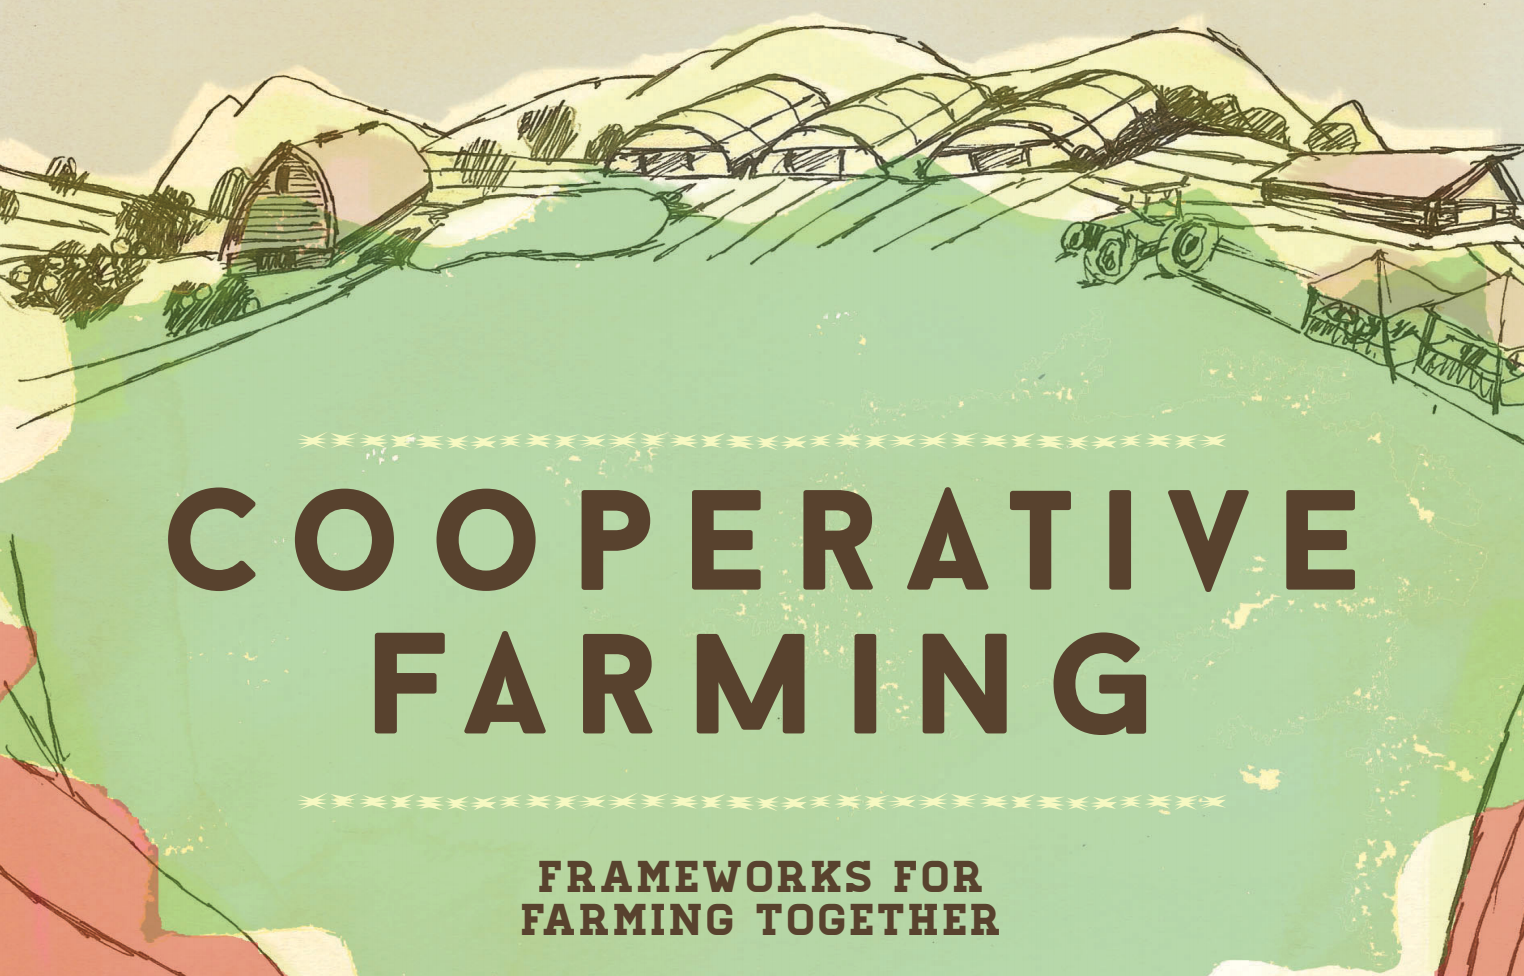 This Co-operative Farming guidebook from the Greenhorns in the U.S. has lots of great ideas for farming and marketing together. Click to view this PDF.